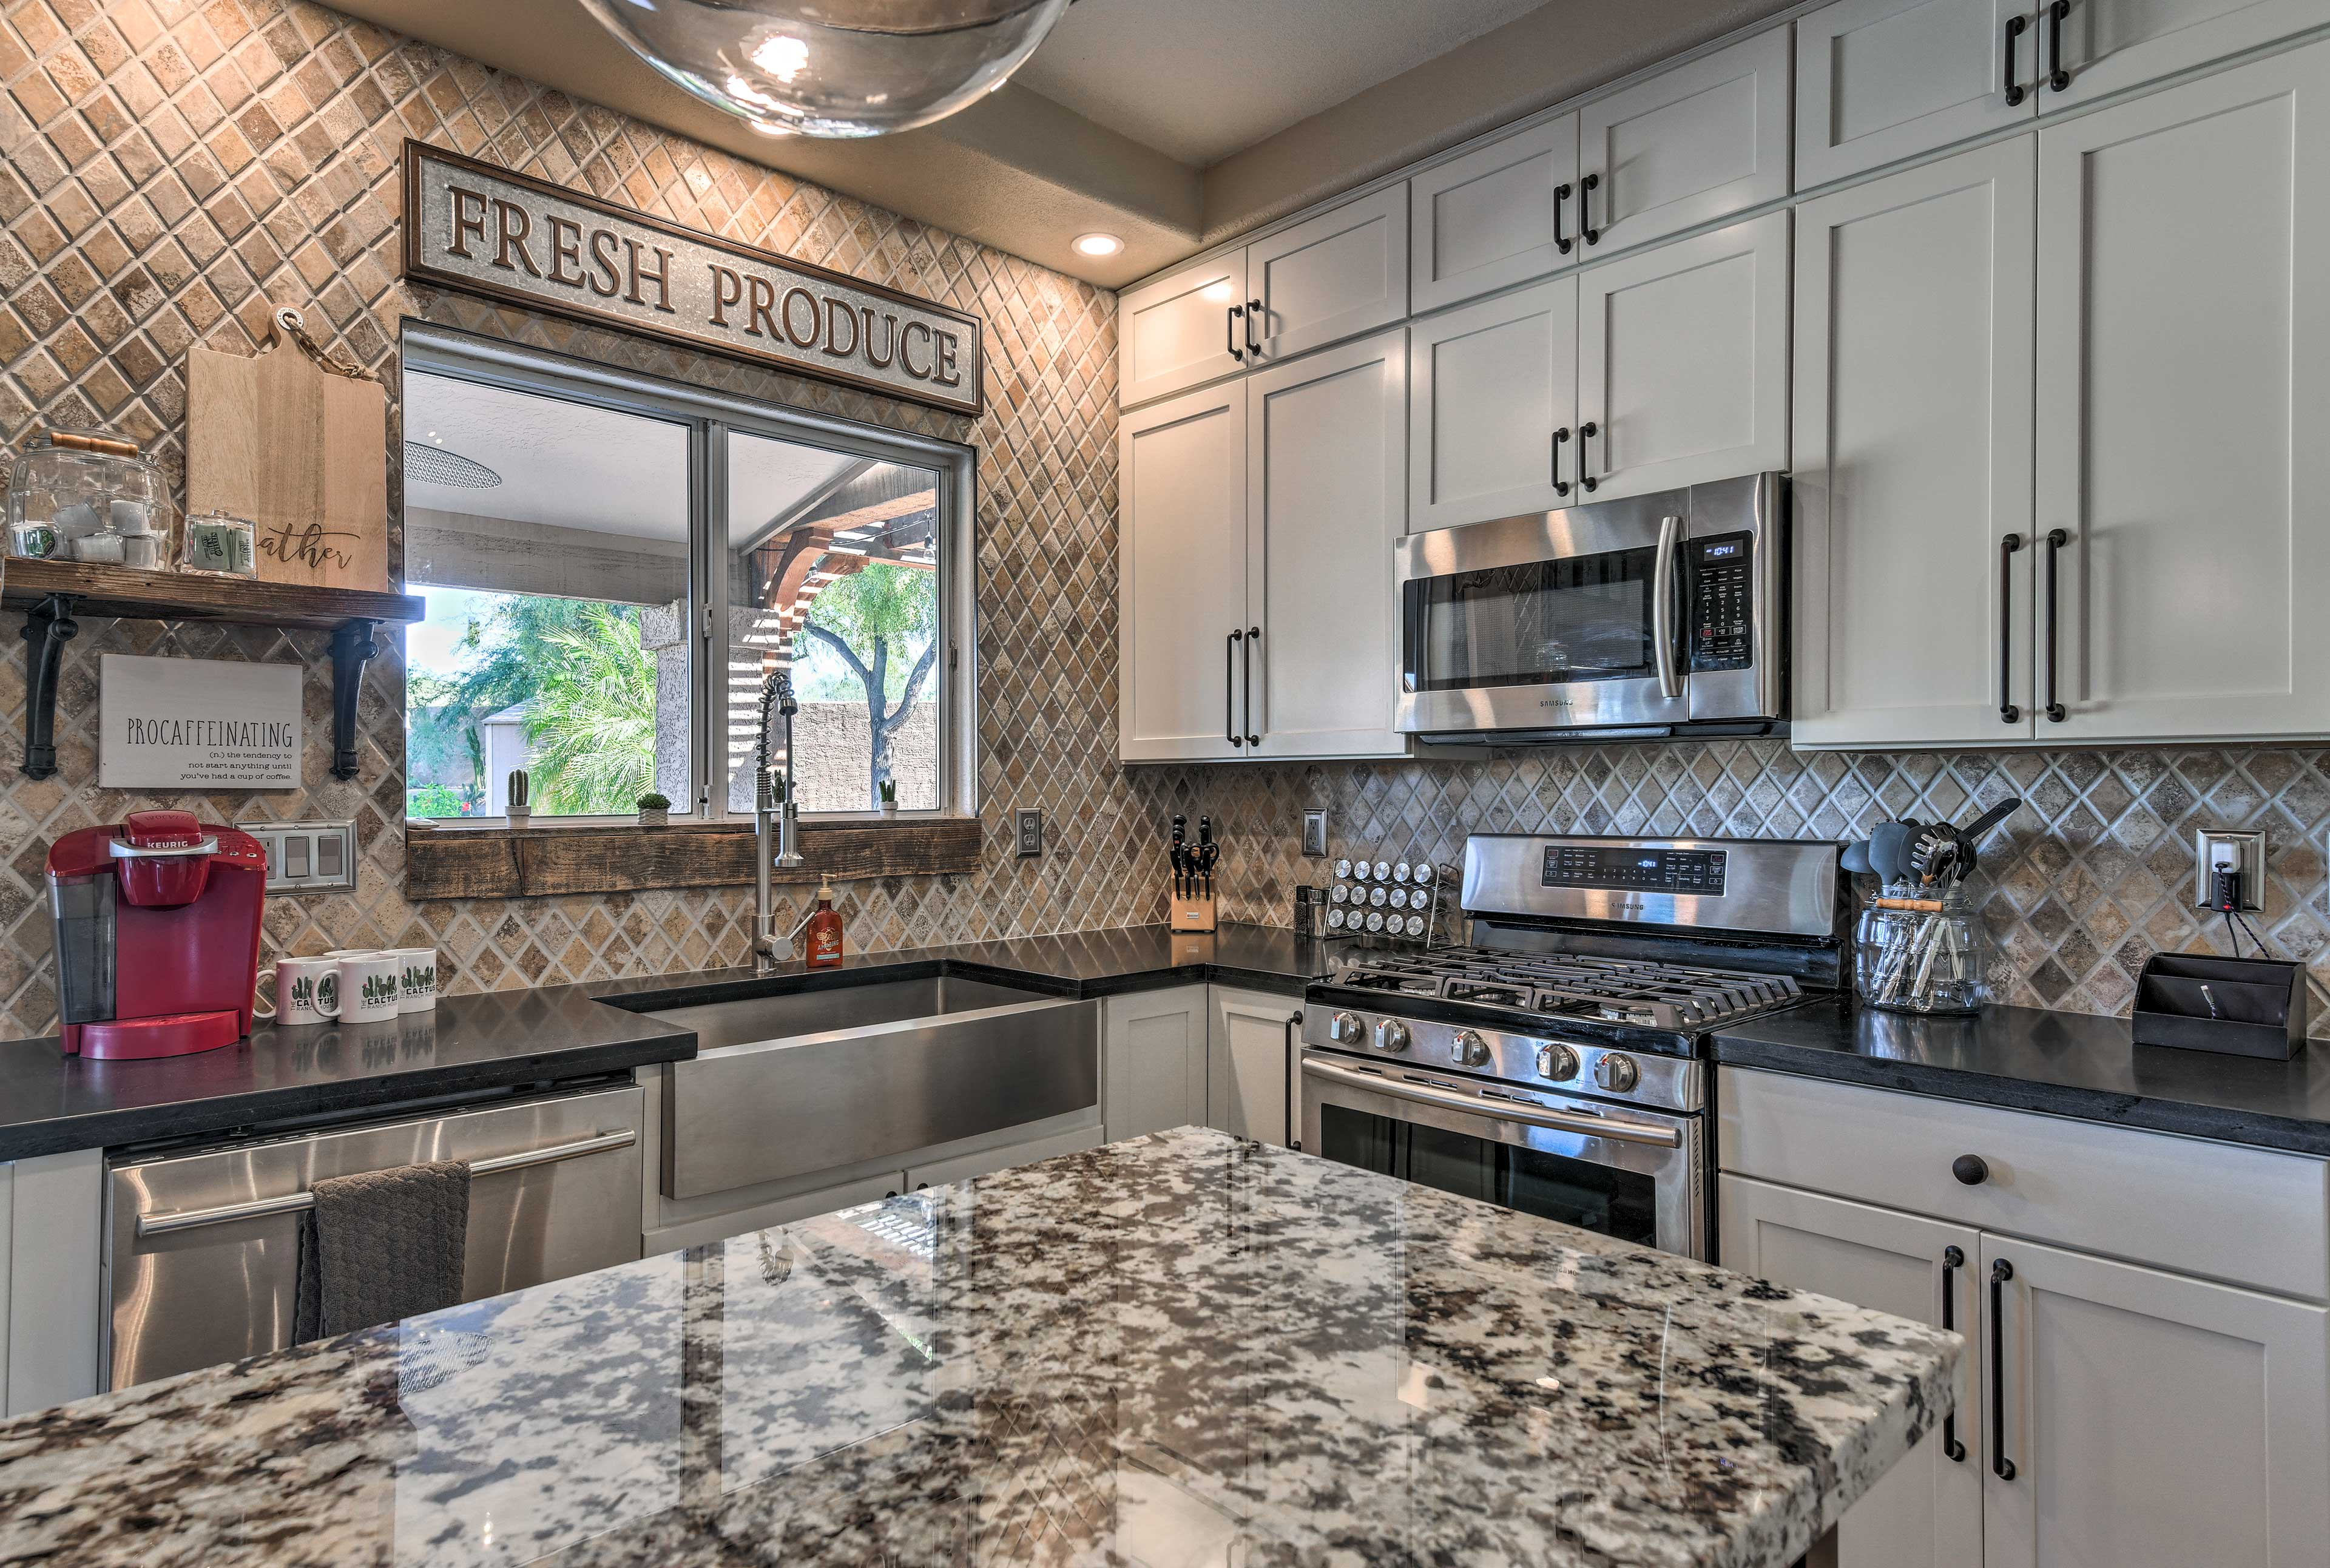 The kitchen offers stainless steel appliances.